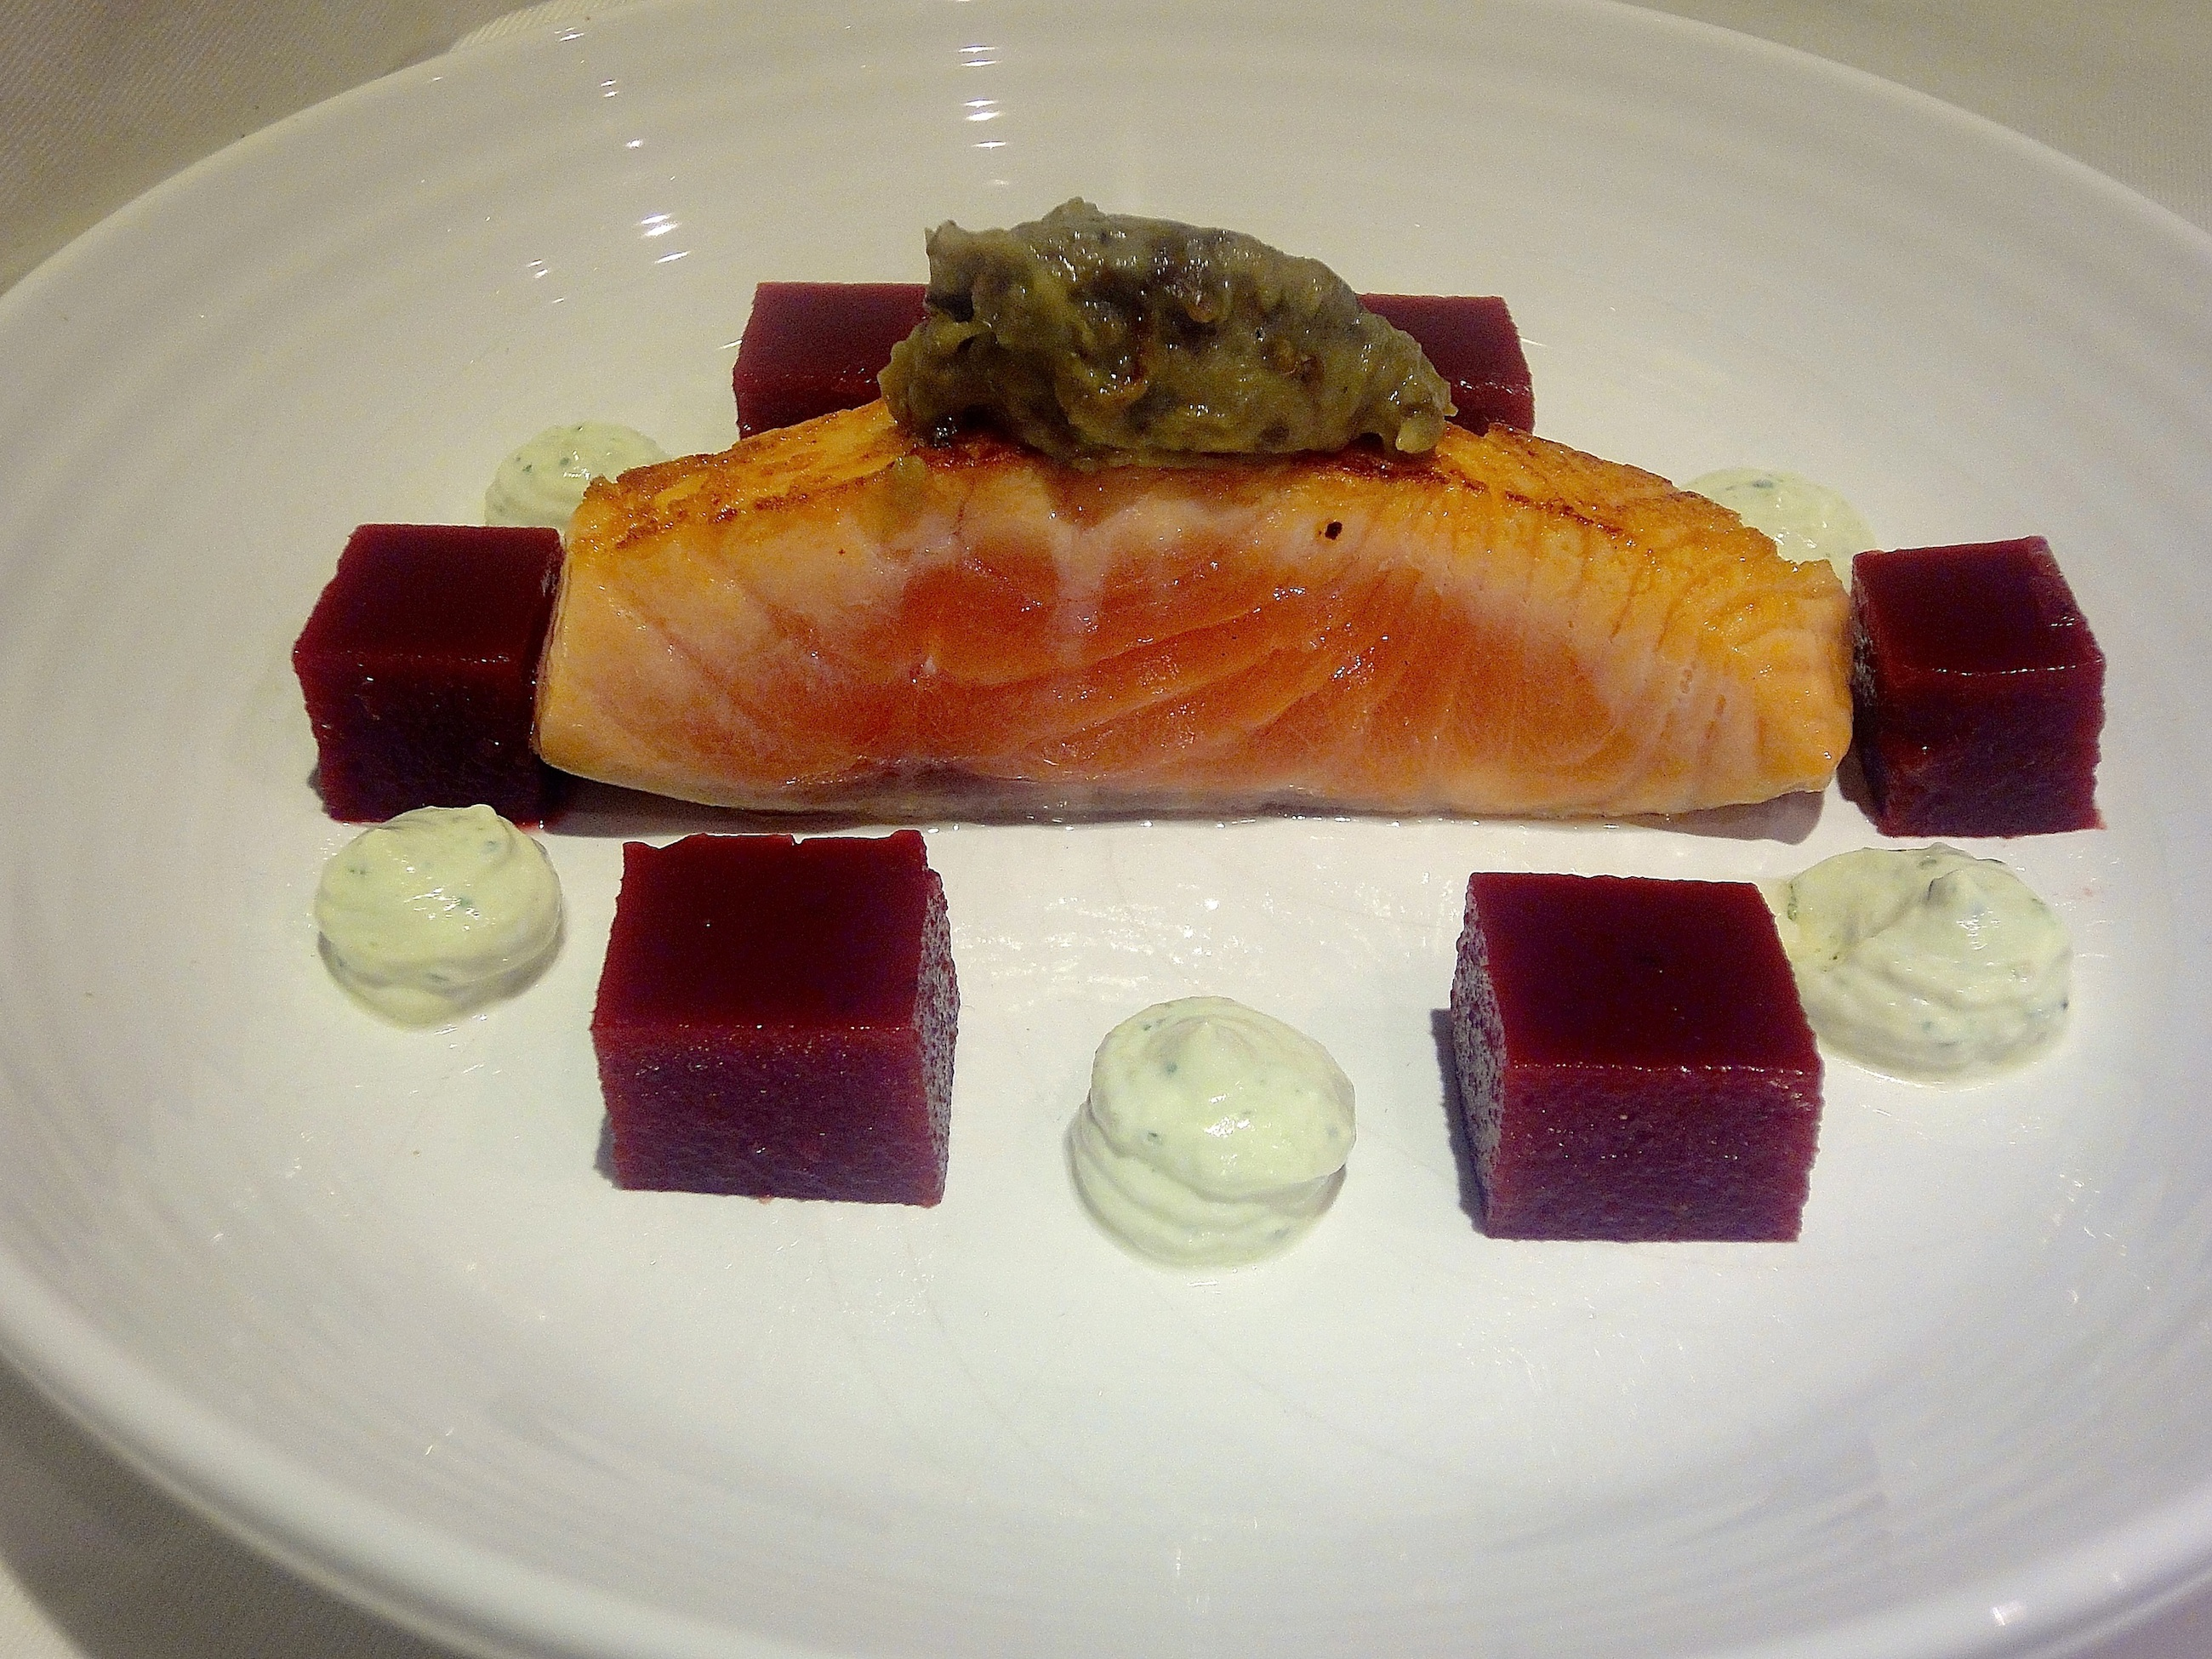 Fennel Cured Salmon with Beetroot Jelly and Pesto Goats Cheese.